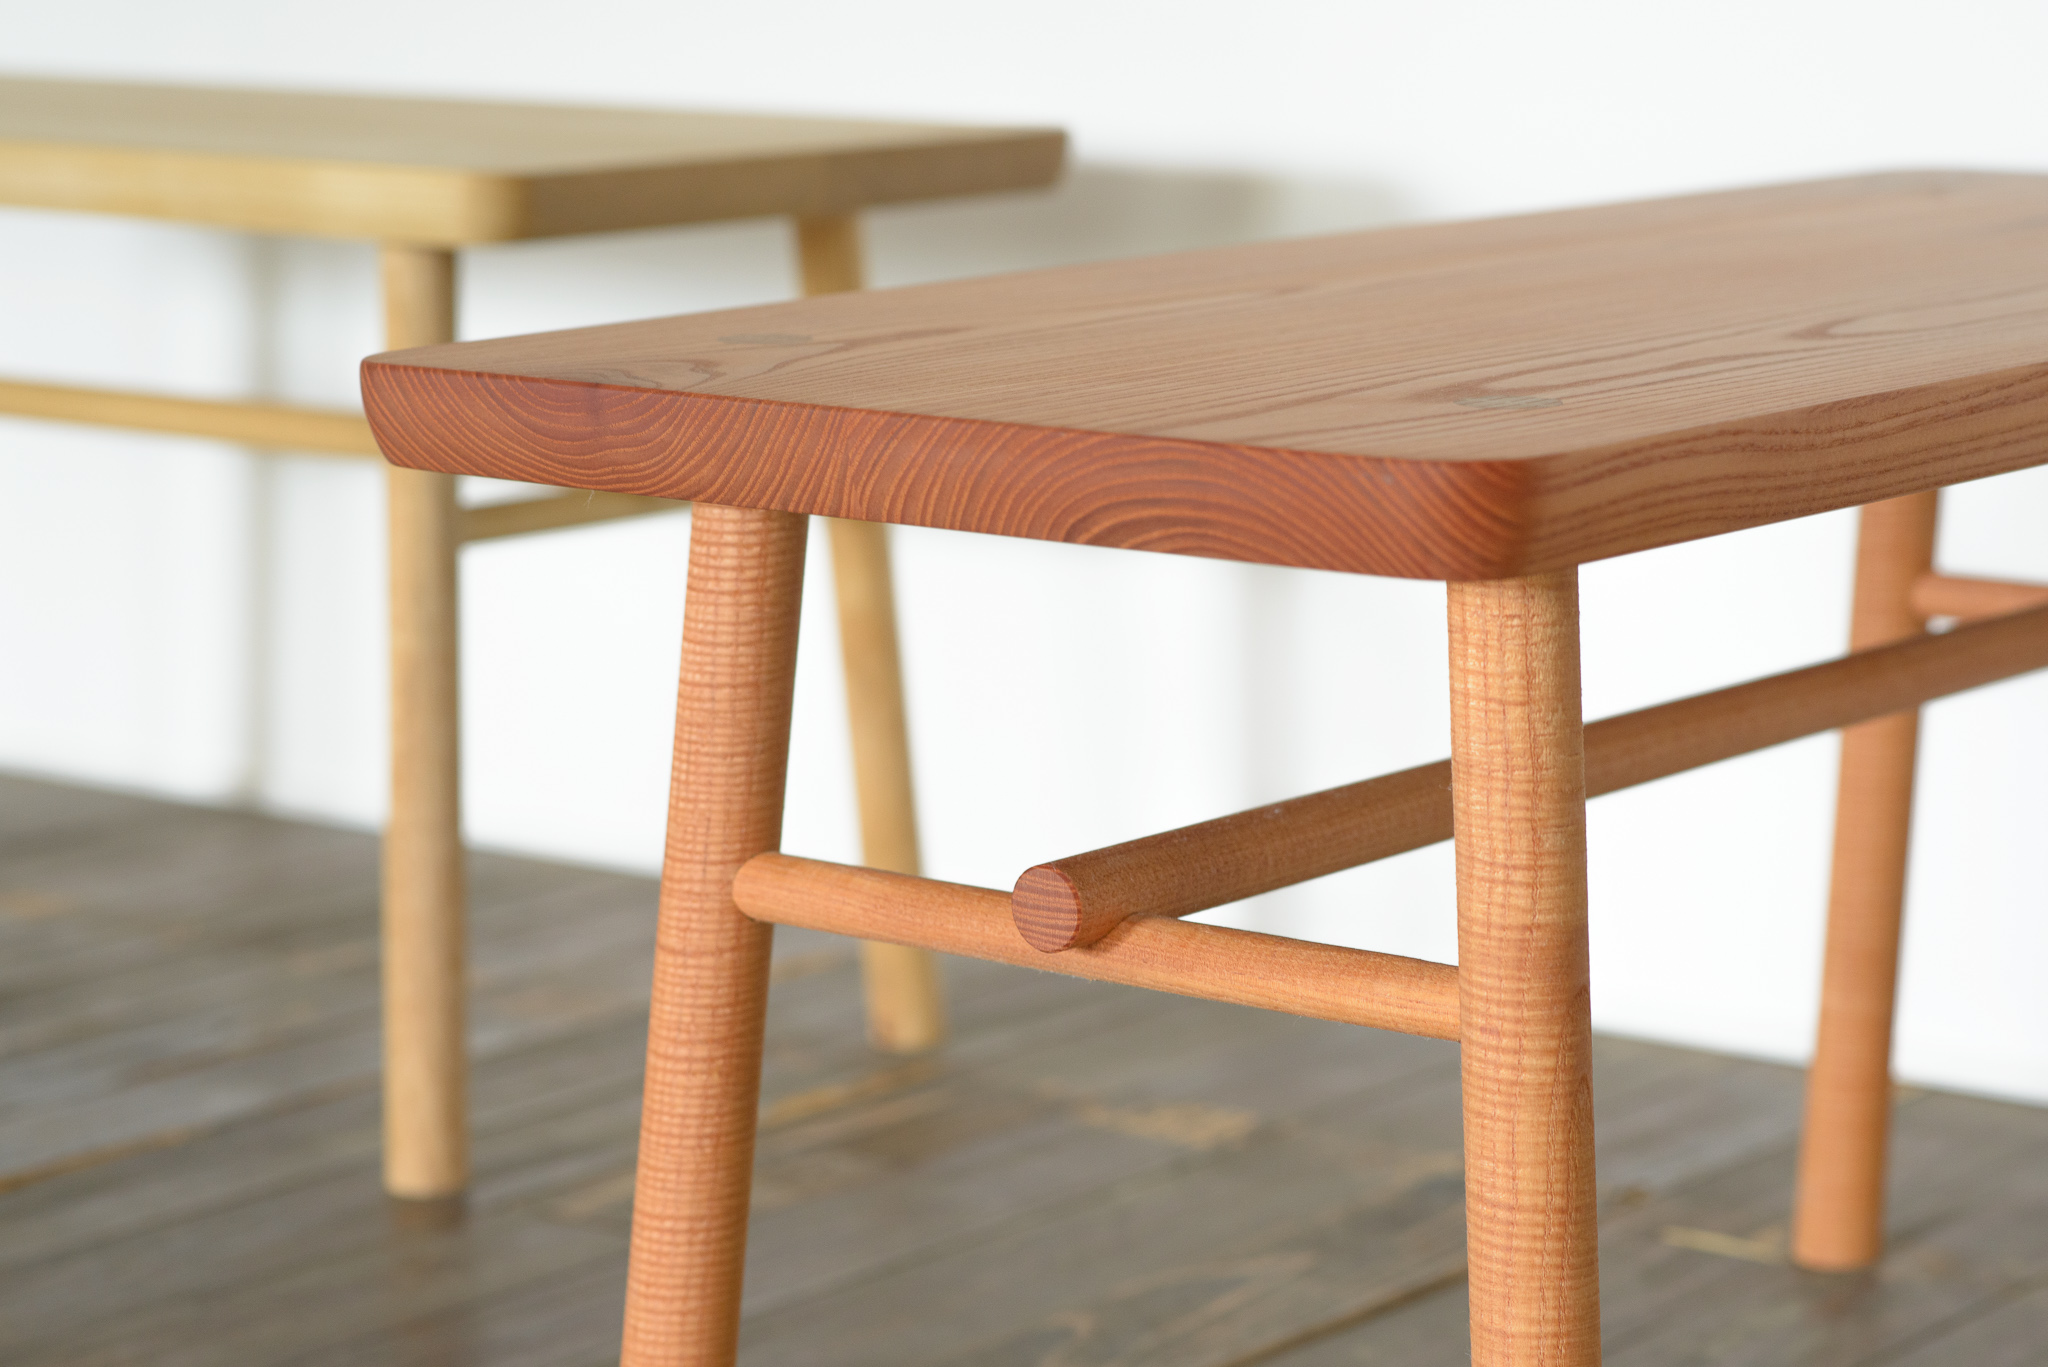 合同会社小島屋 | KOJIMAYA  | The Logde chair |ロッジチェア PHOTO FOR ONLINESHOP